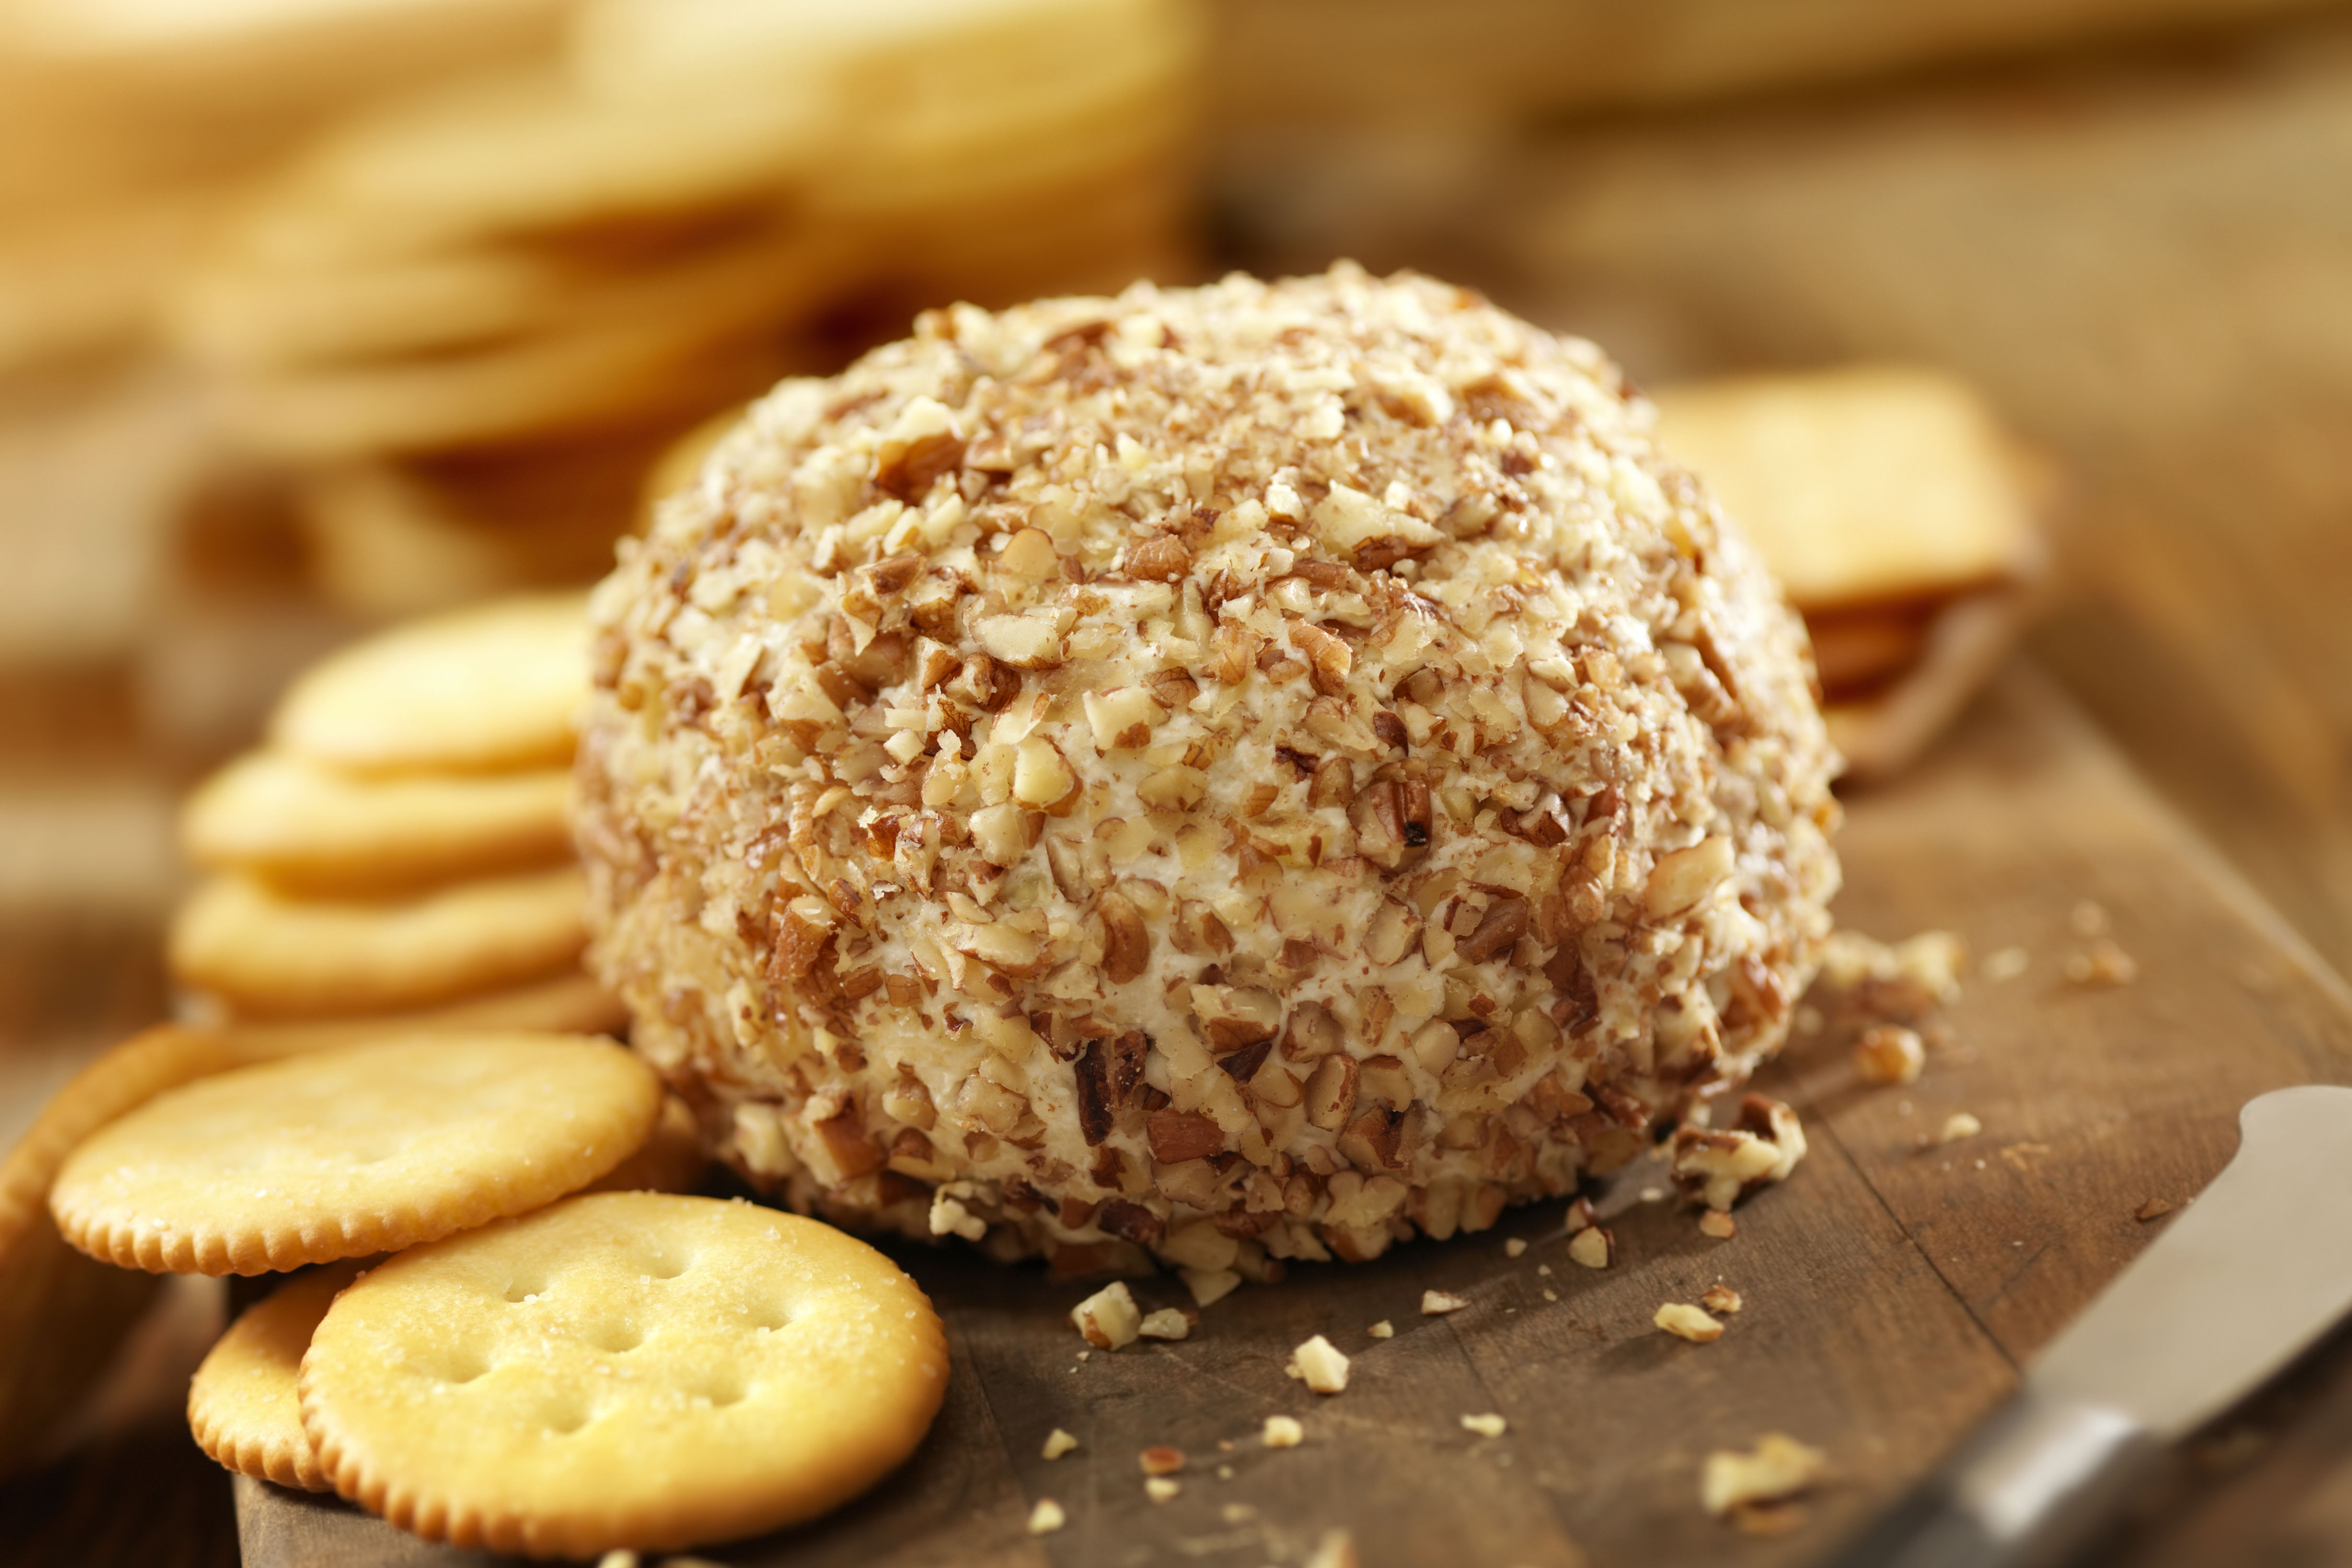 Why Everyone Loves the Pineapple Cheese Ball